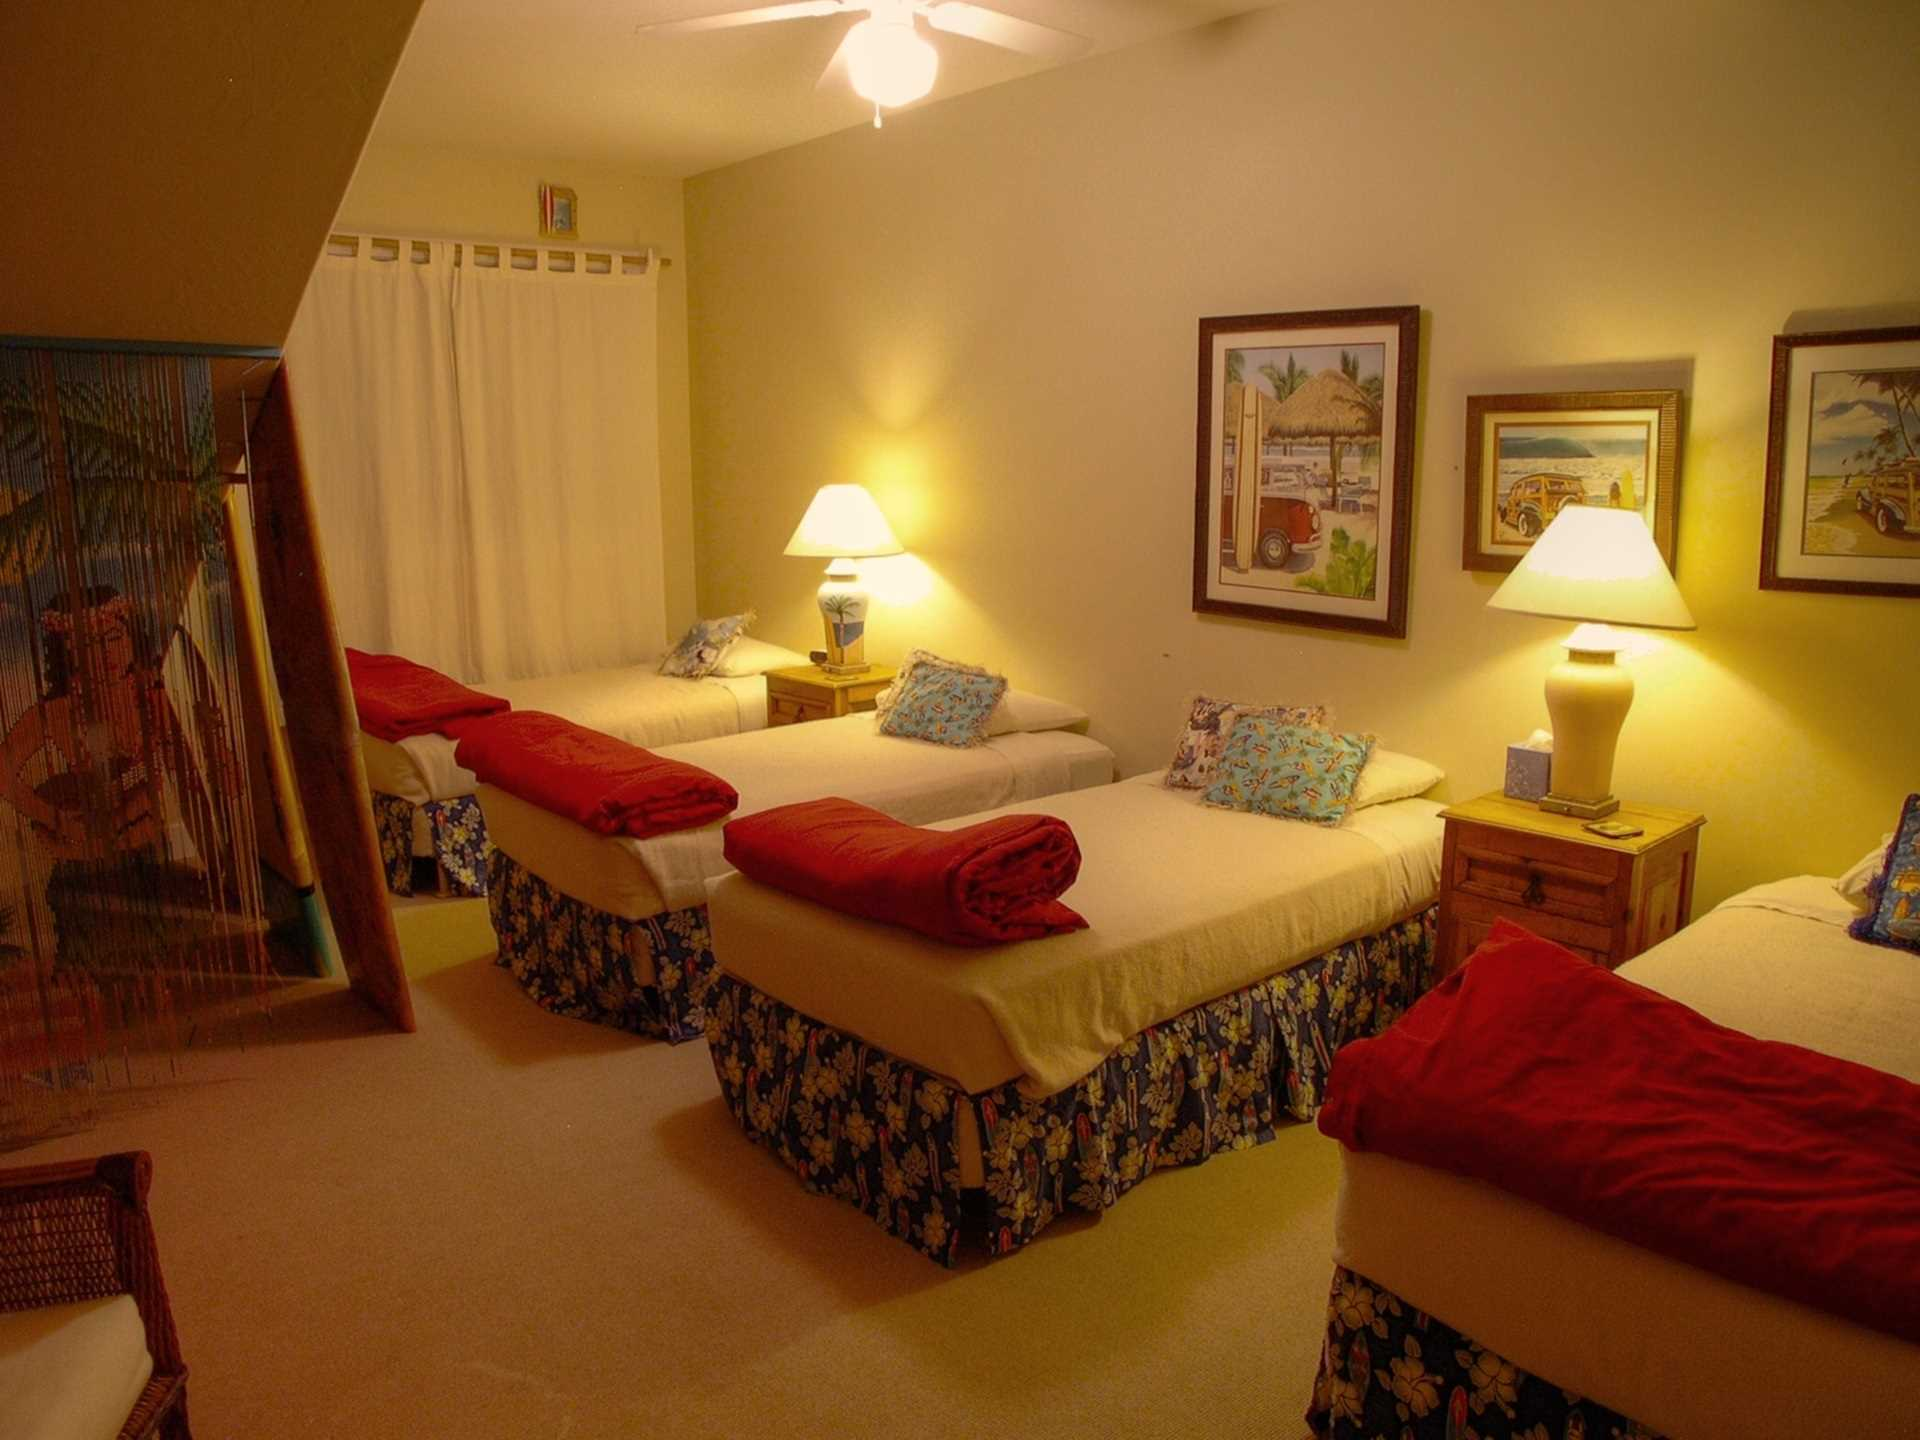 The Surfer's Bedroom is colorfully decorated with surf boards and fun pictures.  It features four twin beds and a TV so the kids can disappear while the adults enjoy conversation in the living room.